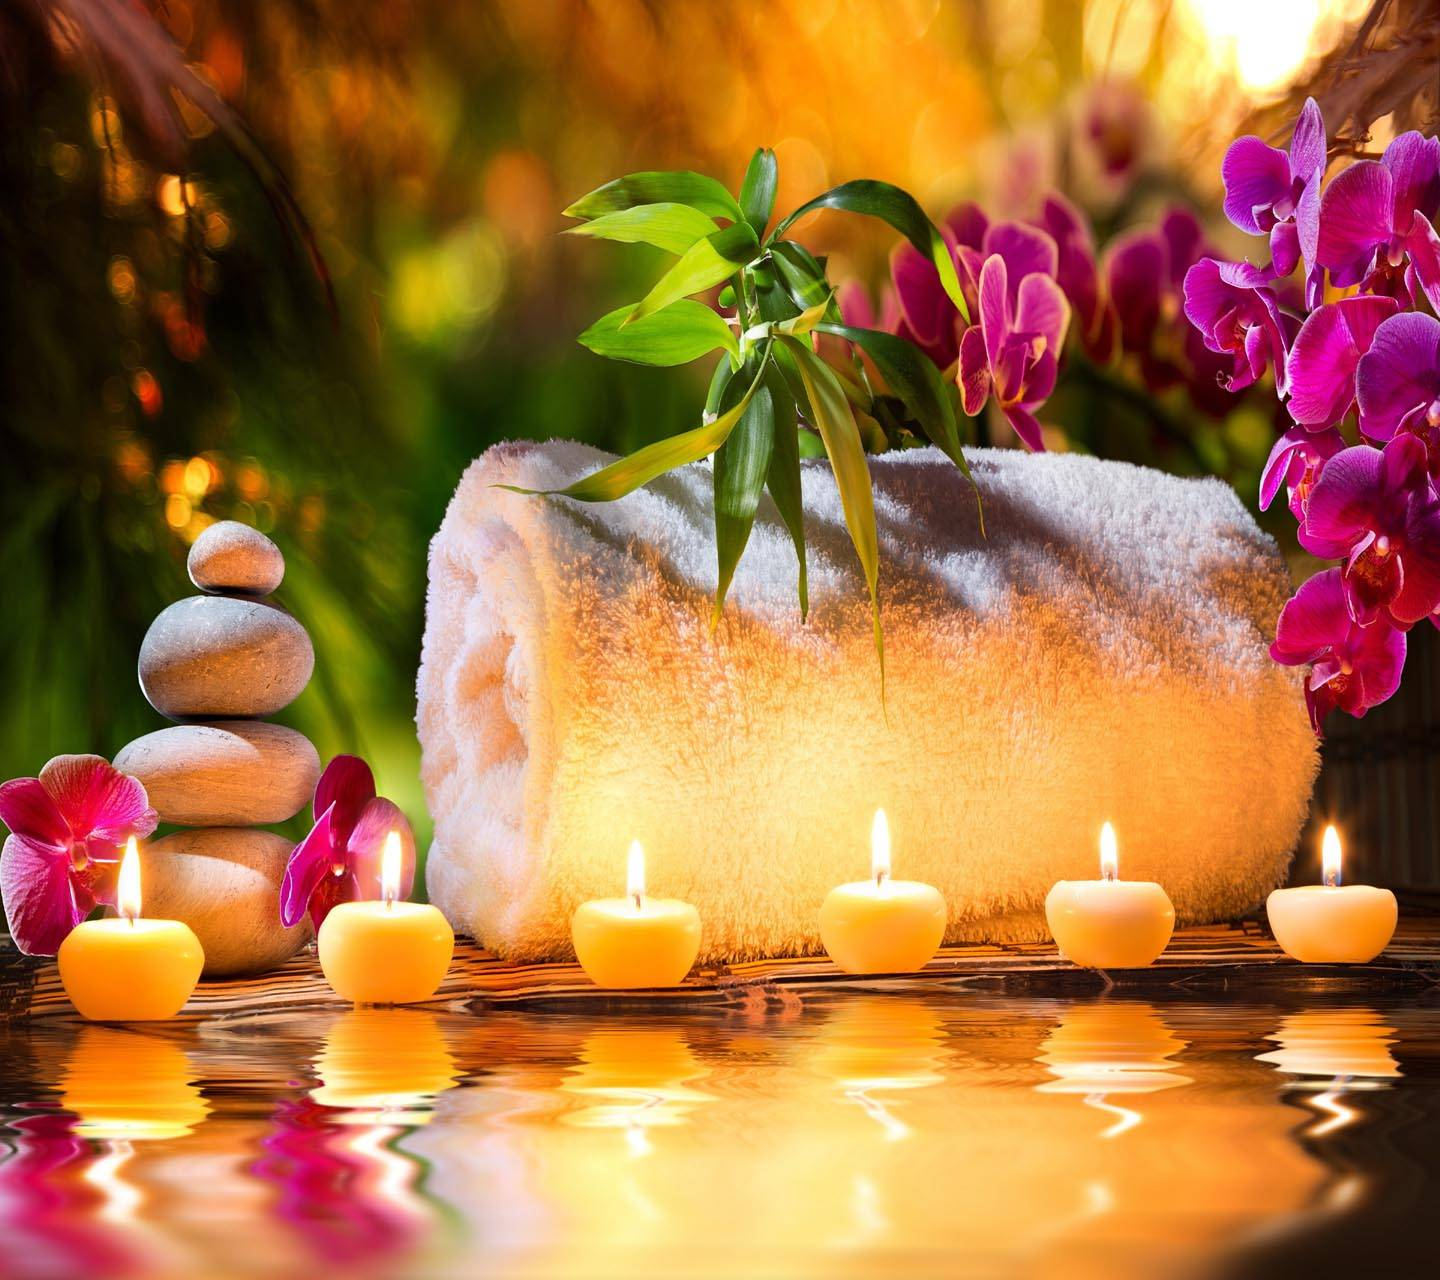 Spa Stones Candles